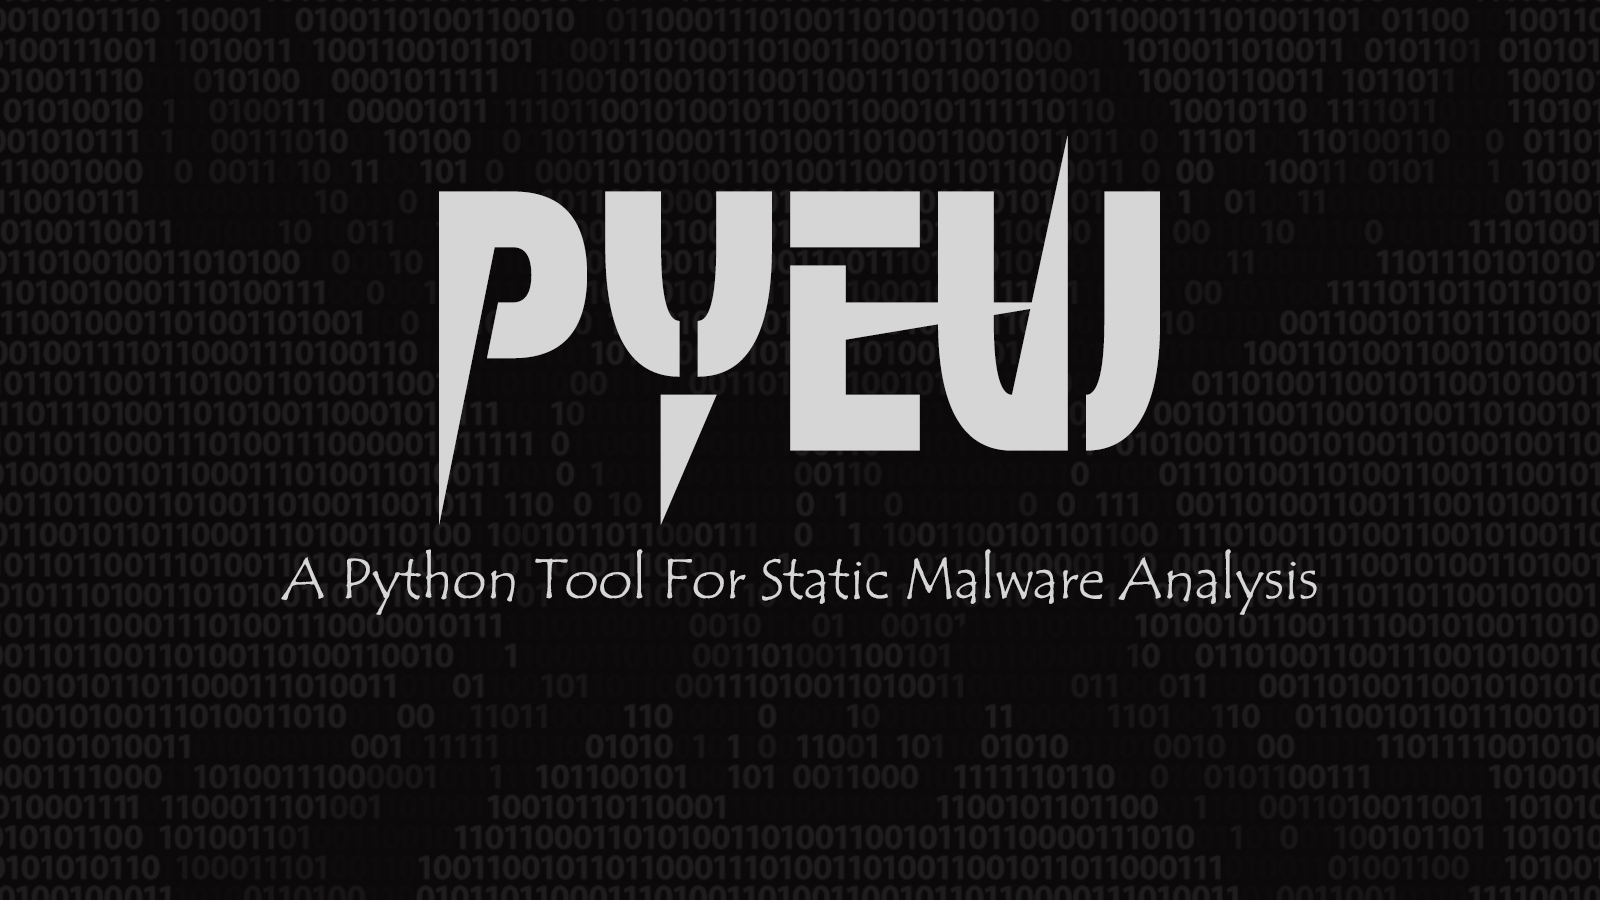 Pyew - A Python Tool For Static Malware Analysis